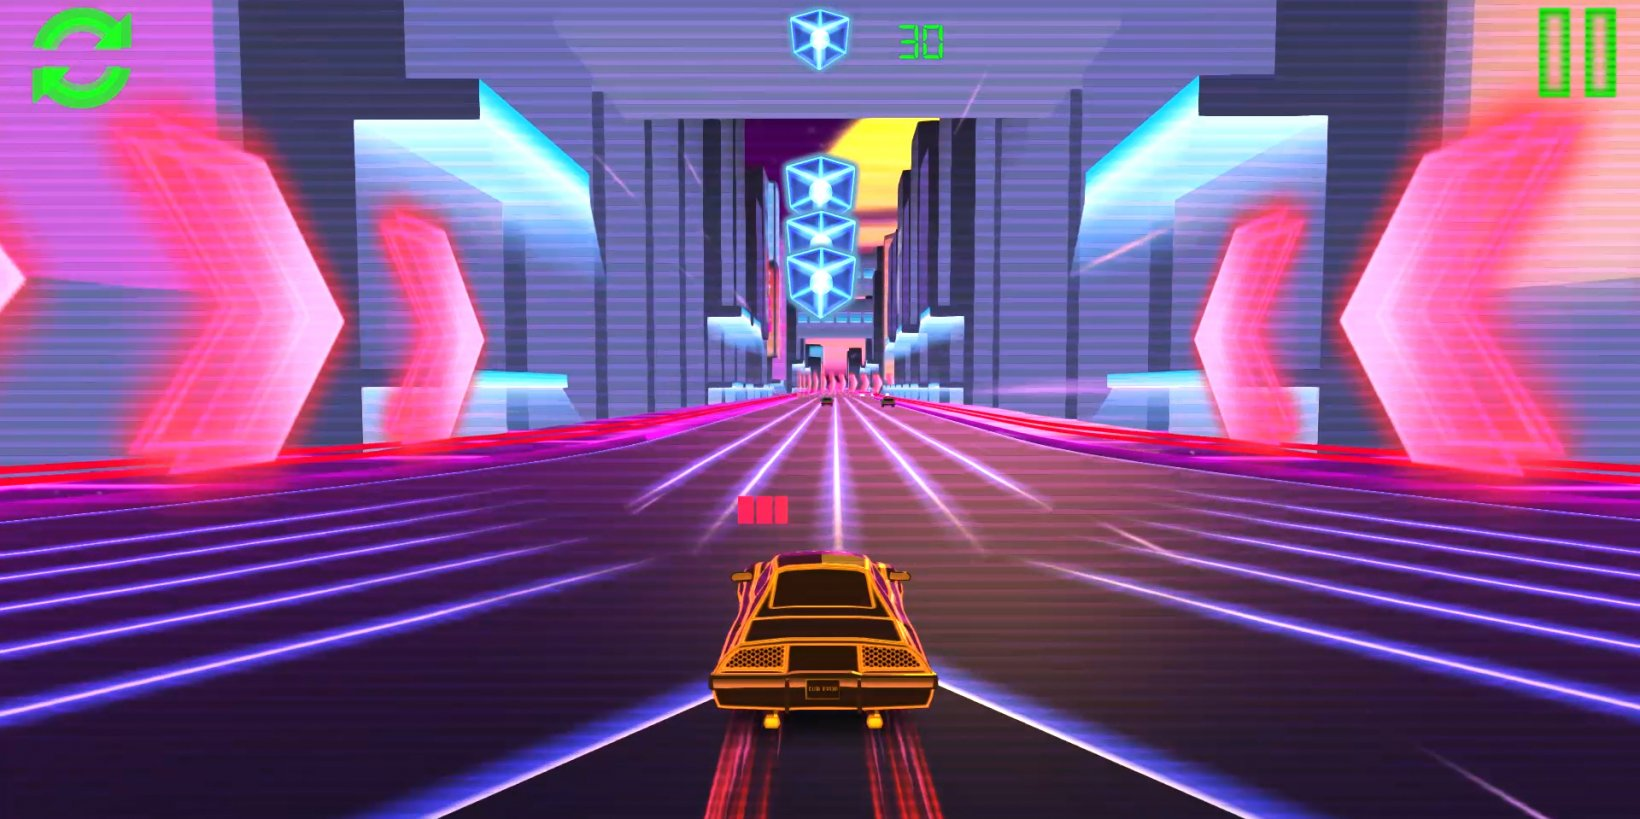 Retro Drive is a neon-soaked arcade racer with a killer synthwave soundtrack